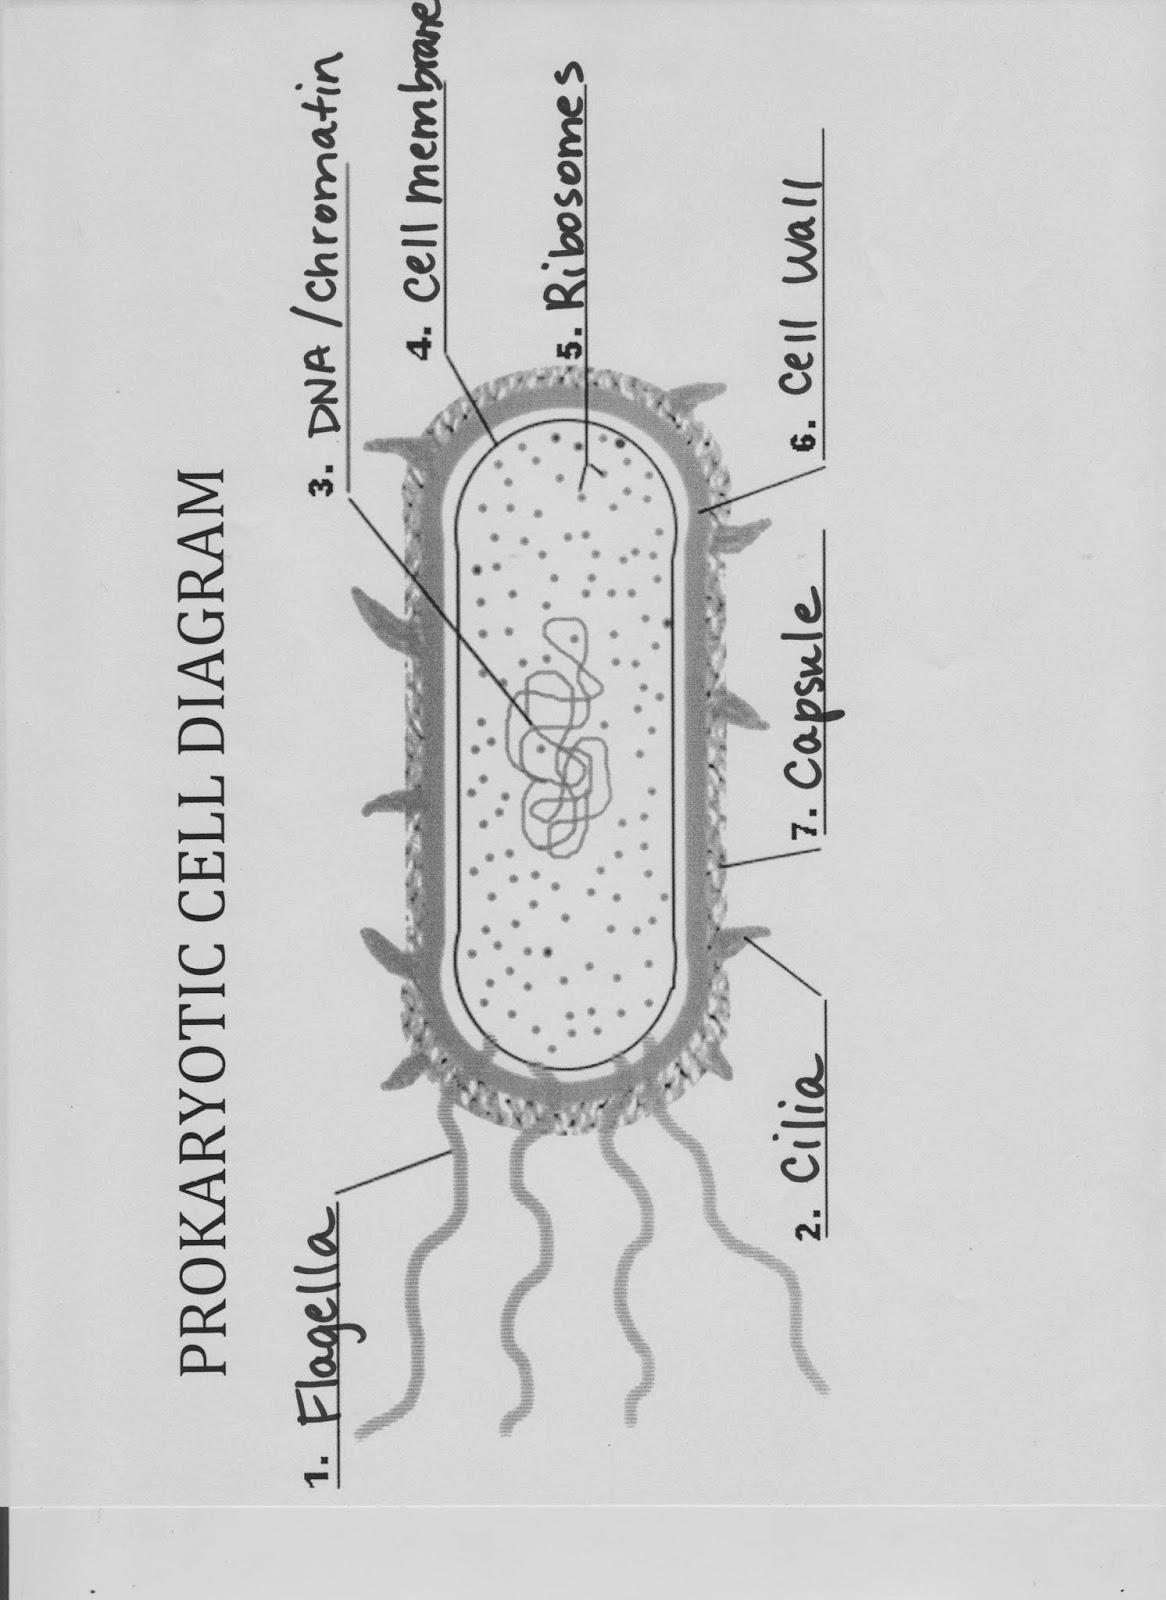 Biology With Coach T November 2013 Collection Prokaryotic Cell Diagram Labels Pictures Diagrams Related You Must Know